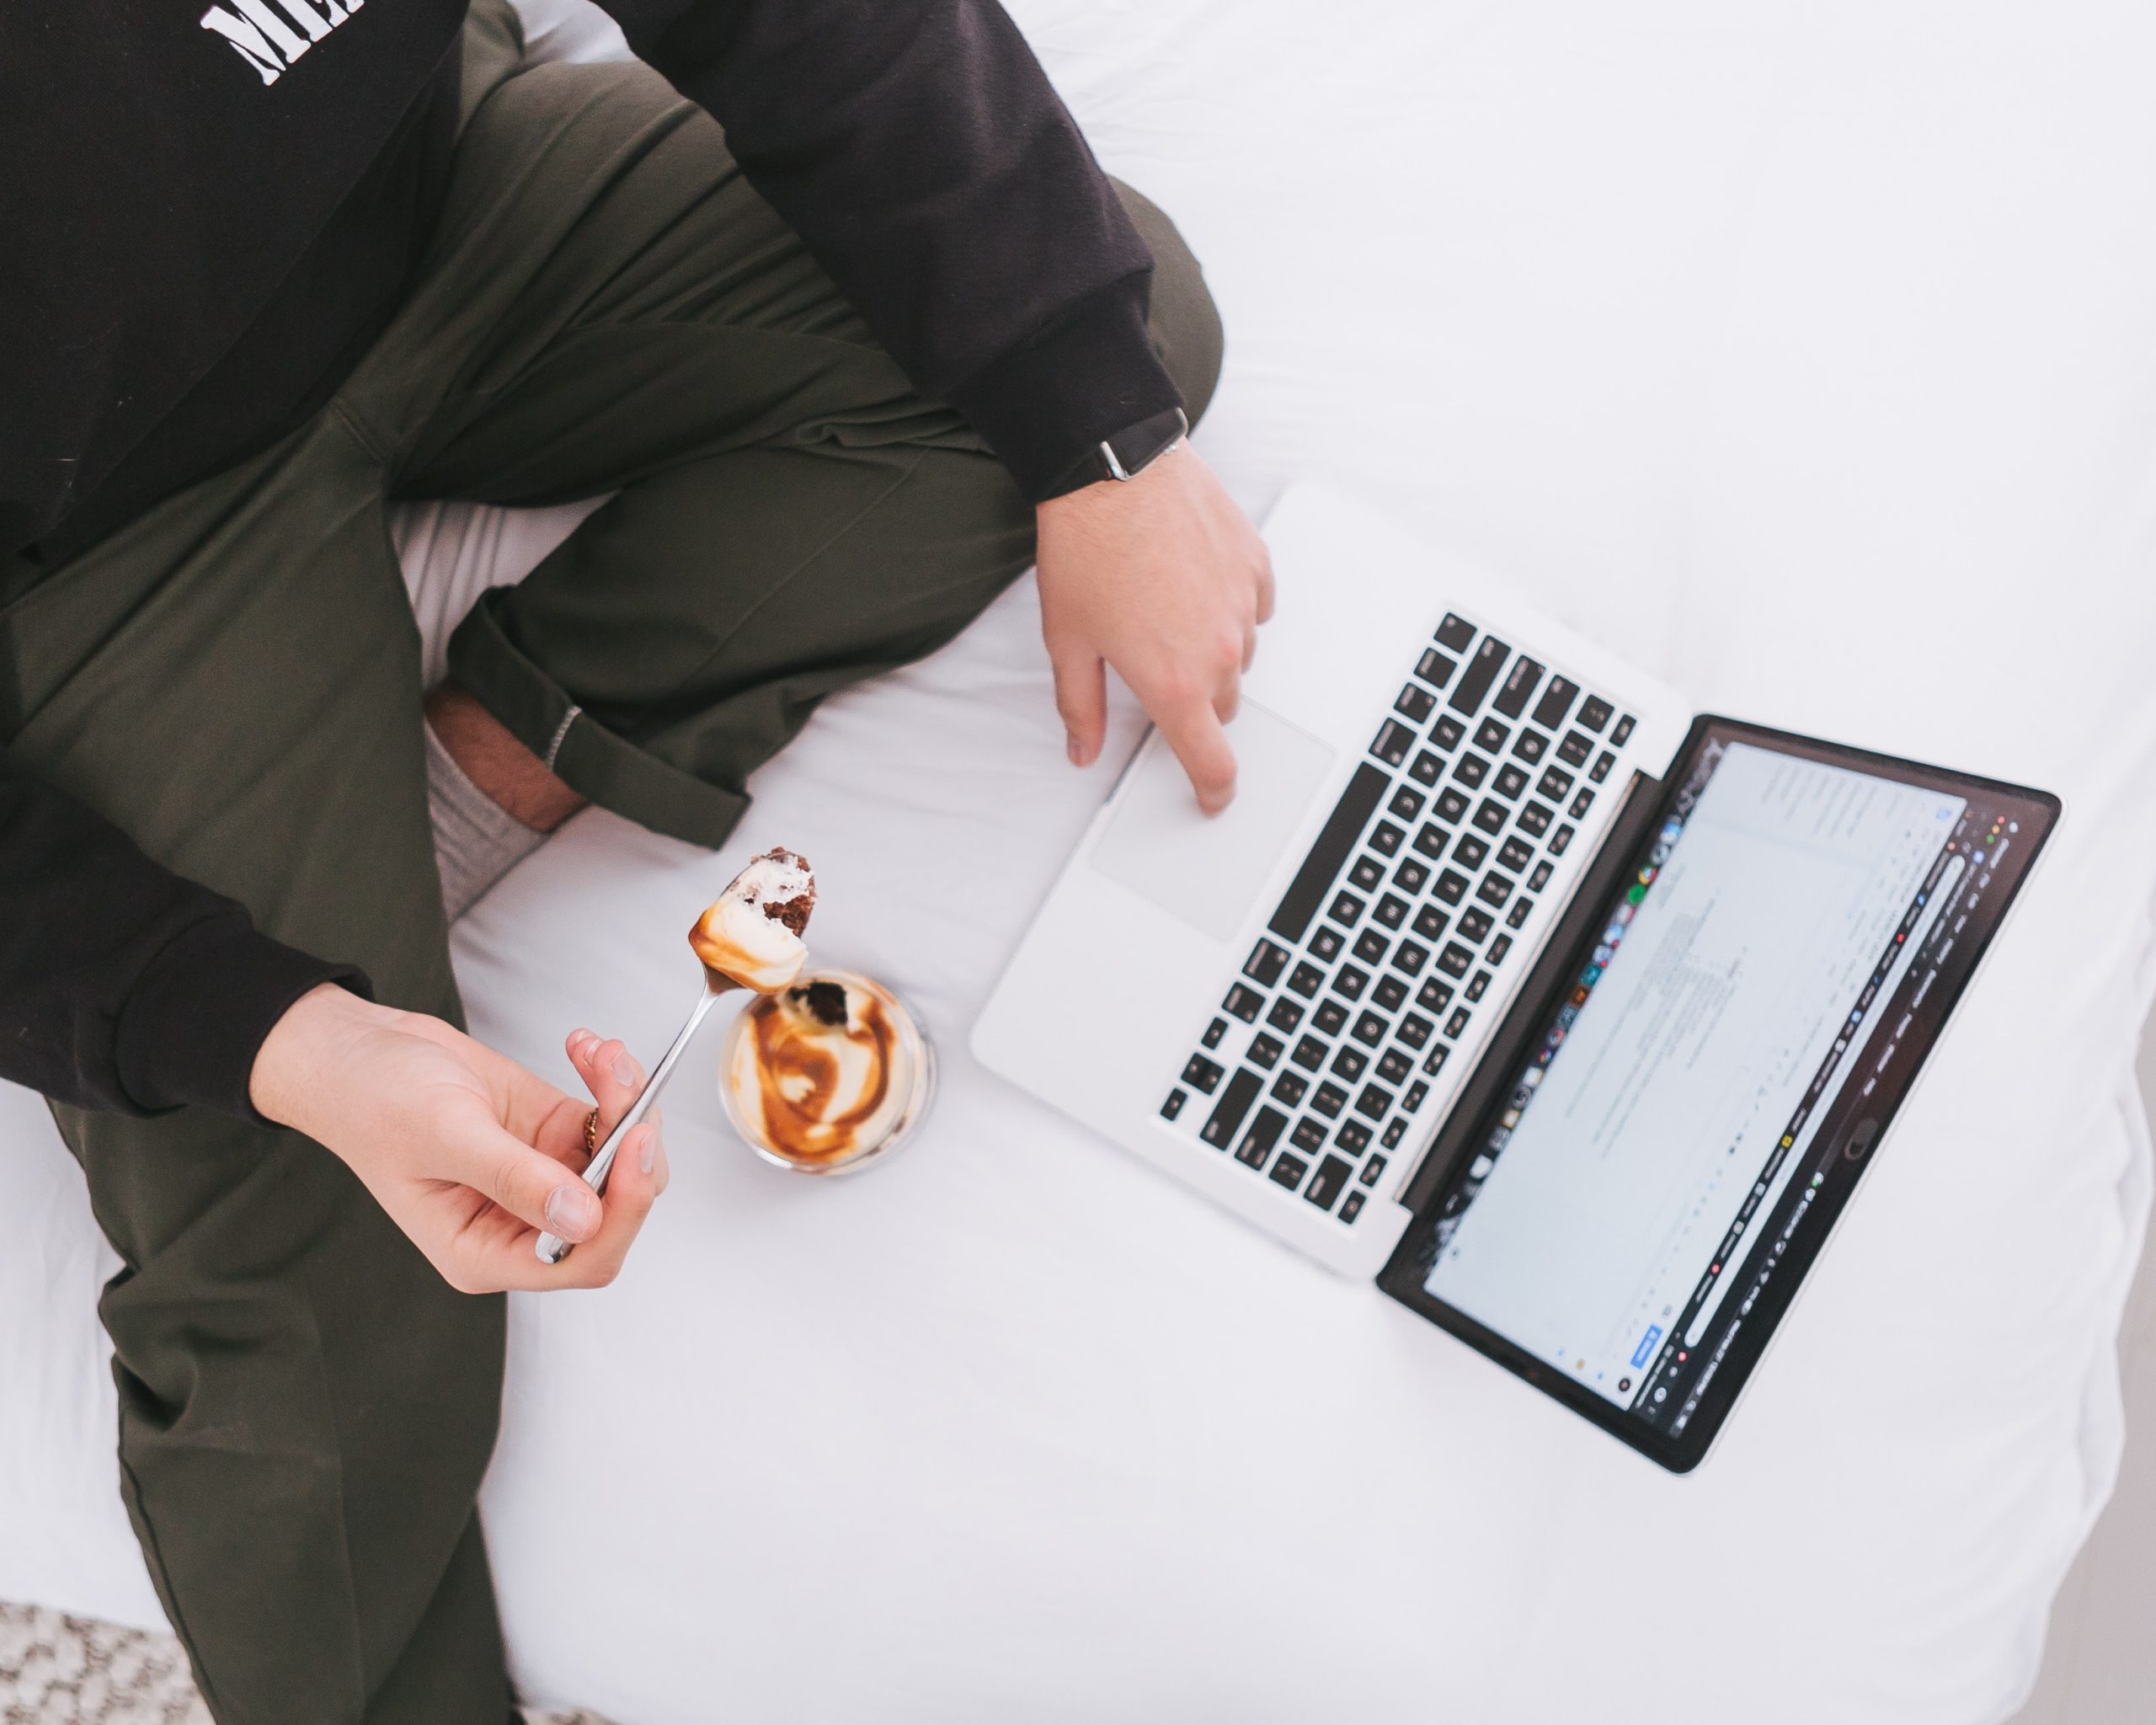 Mac laptop on white sheets, someone taps the keypad and simultaneously eats a pastry.- https://unsplash.com/photos/rem8NLYE2Jo image free from Unsplash